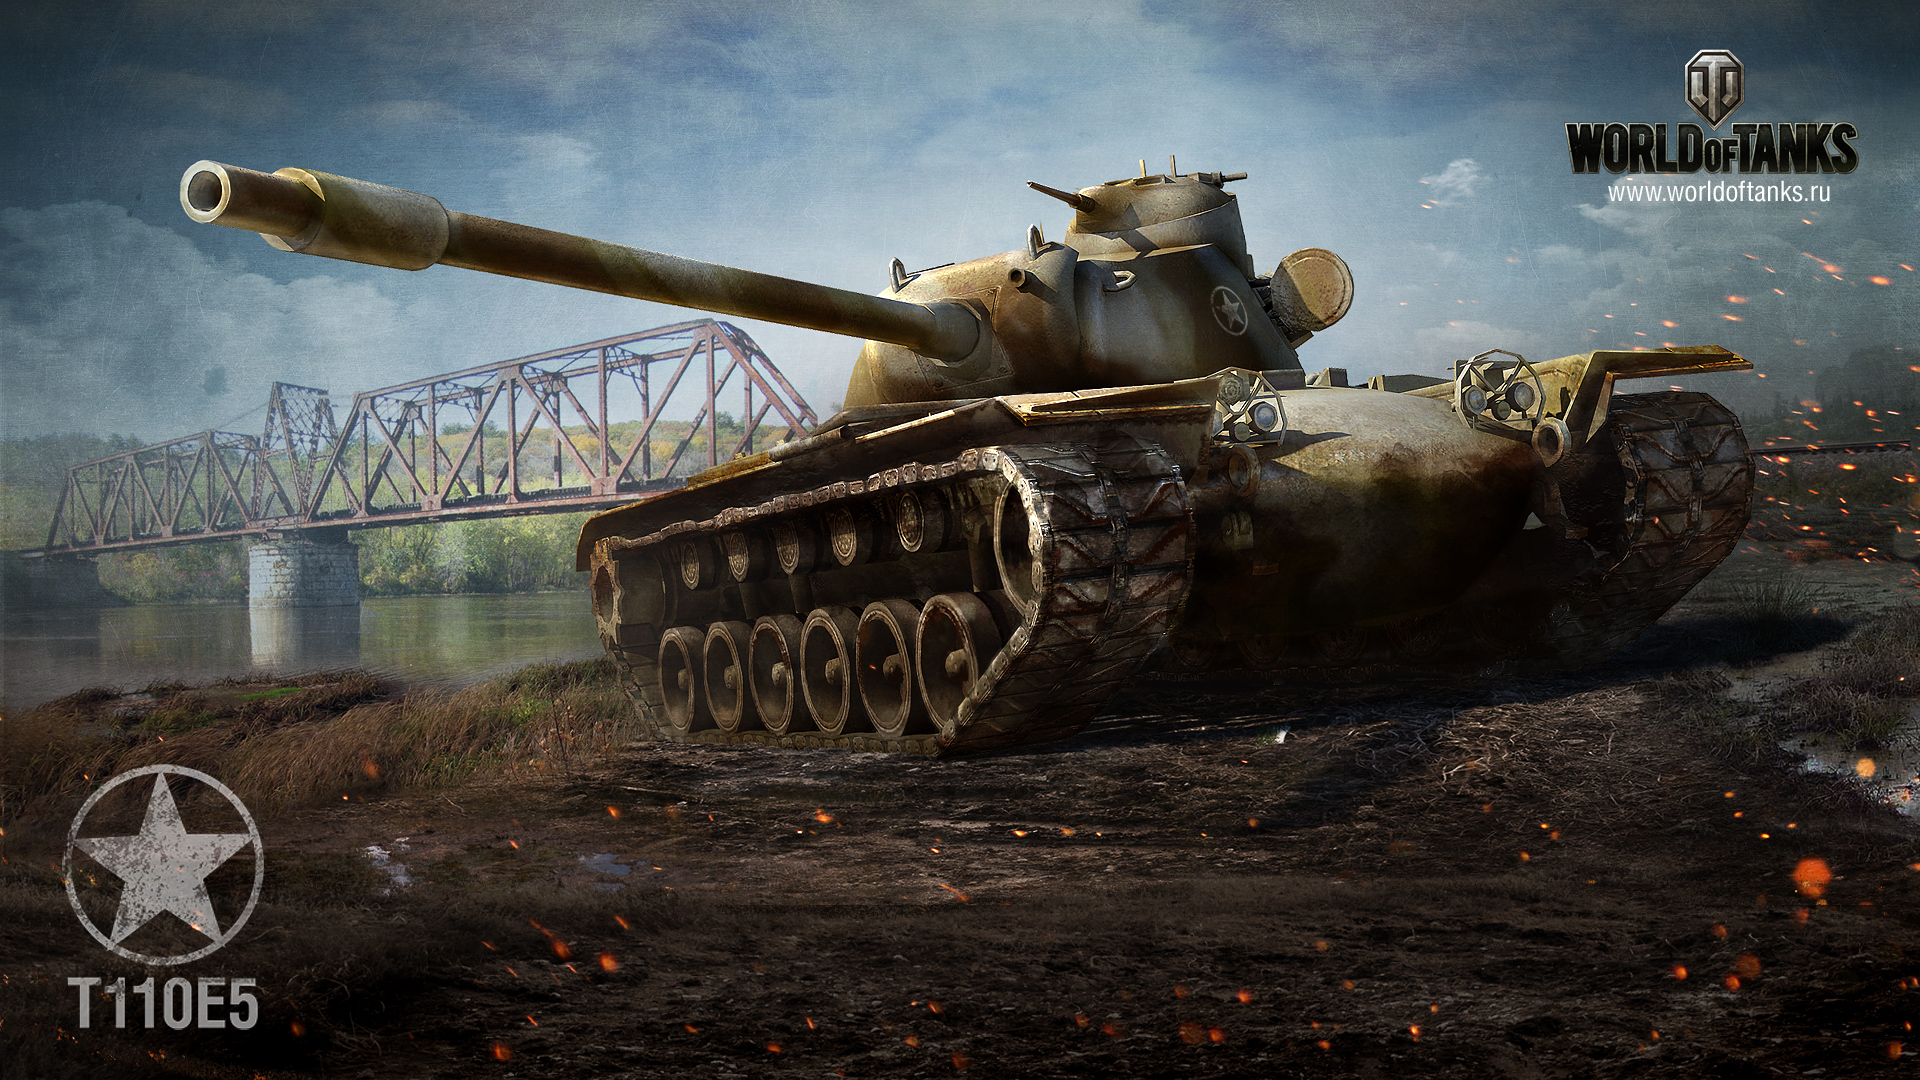 t110e5_ru_1920_1080.jpg - World of Tanks